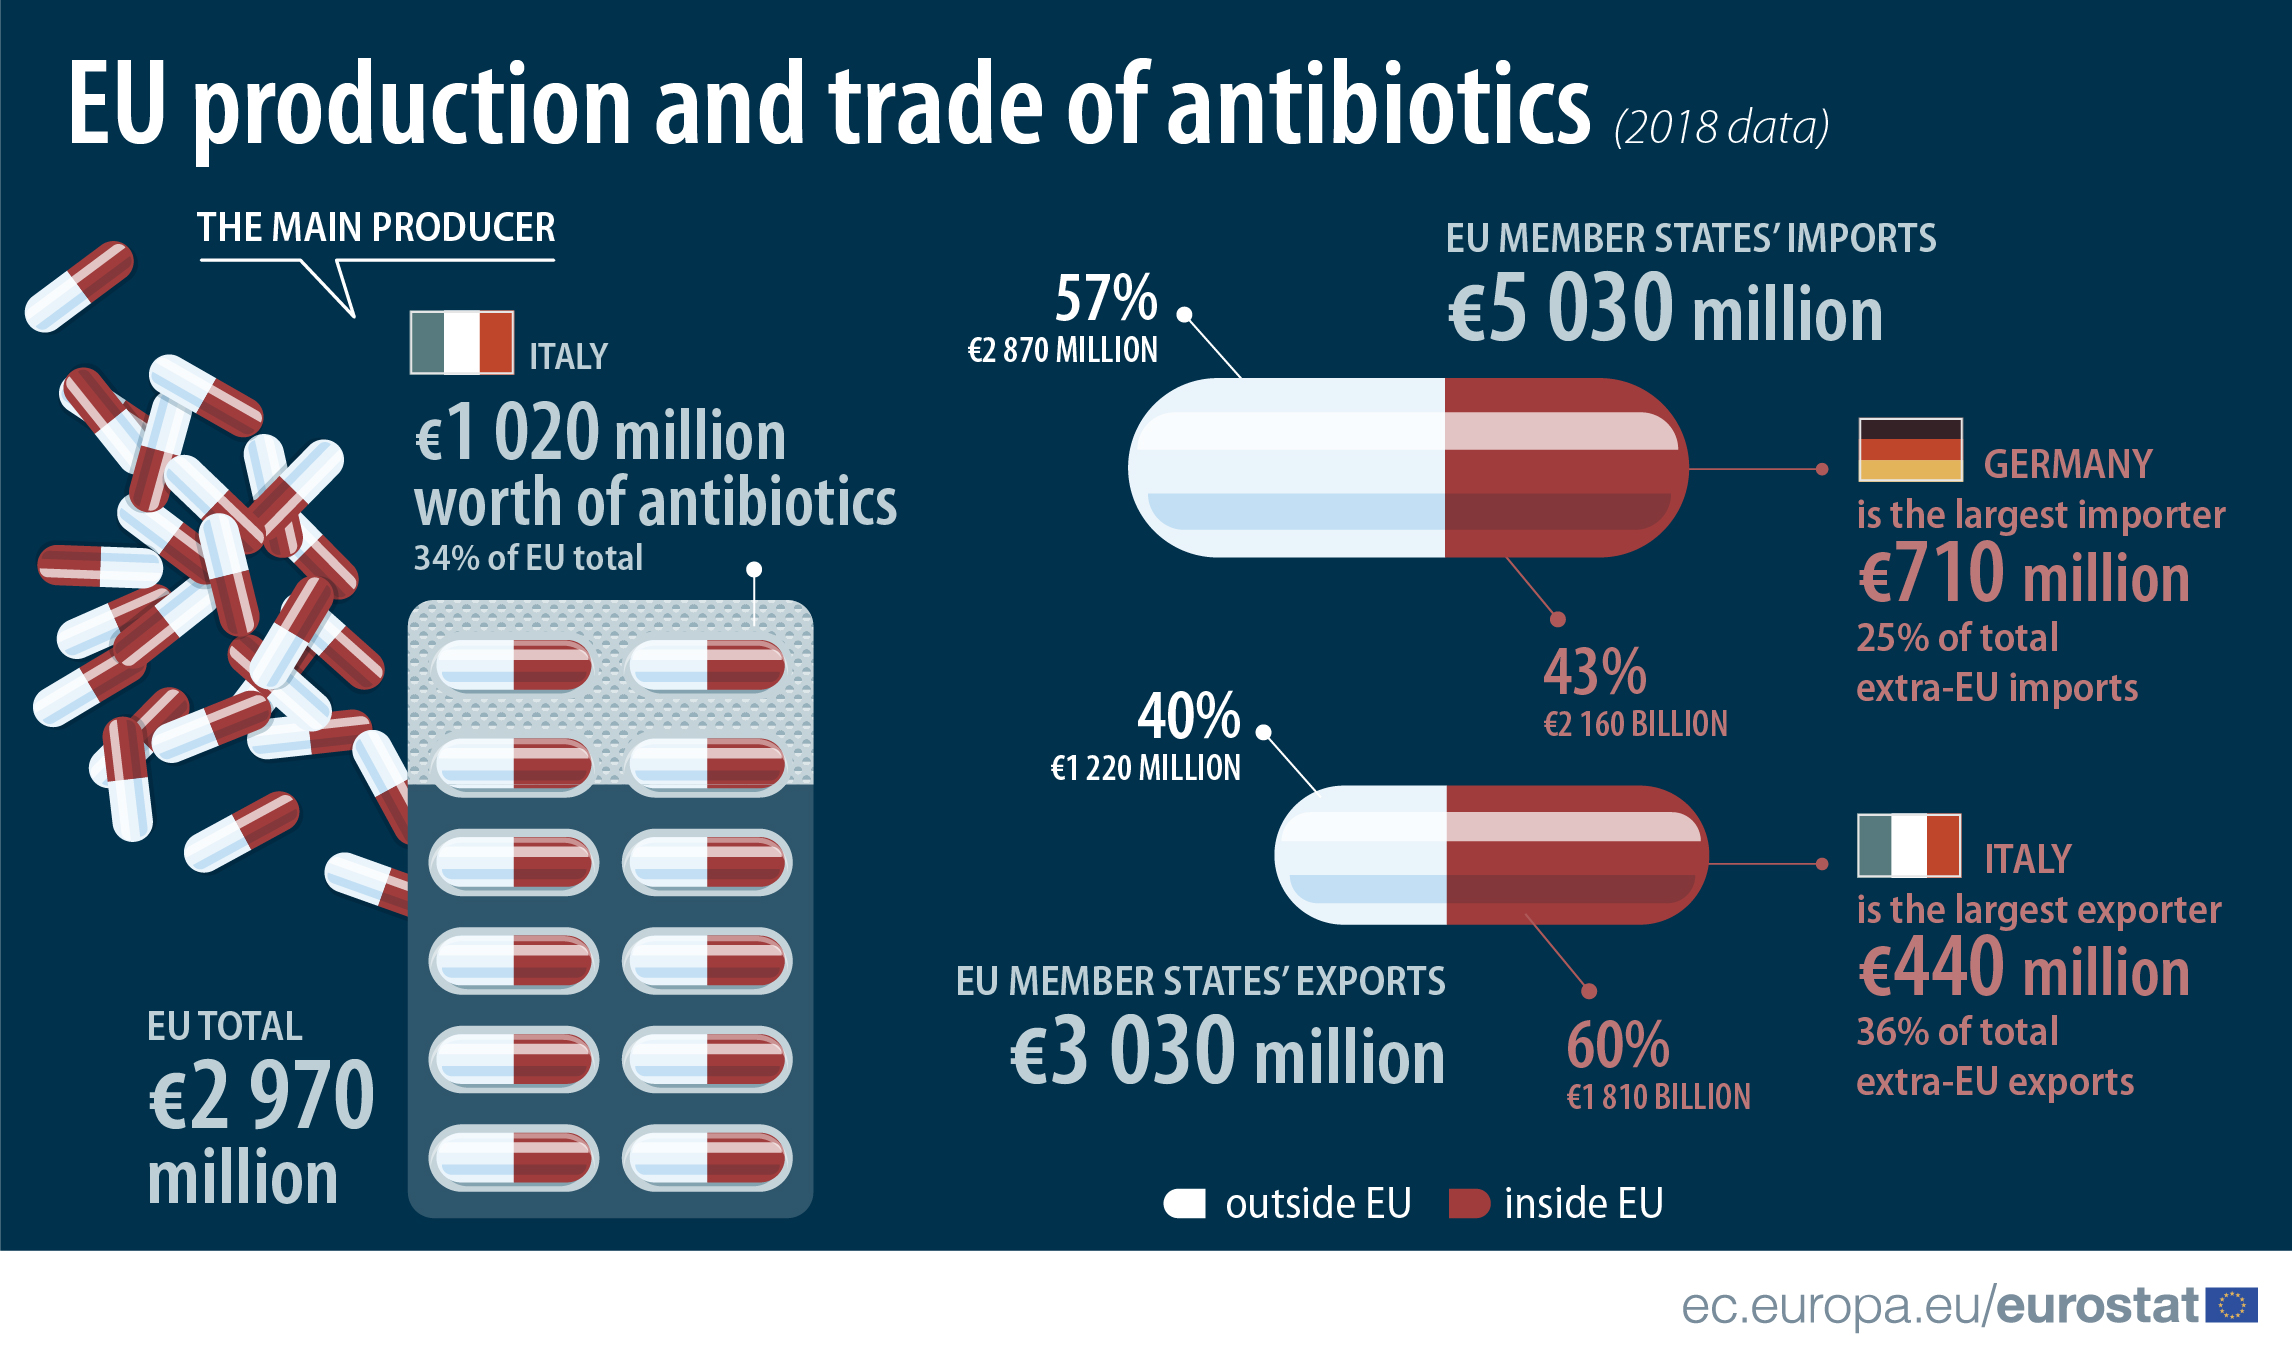 Production and trade in antibiotics, 2018